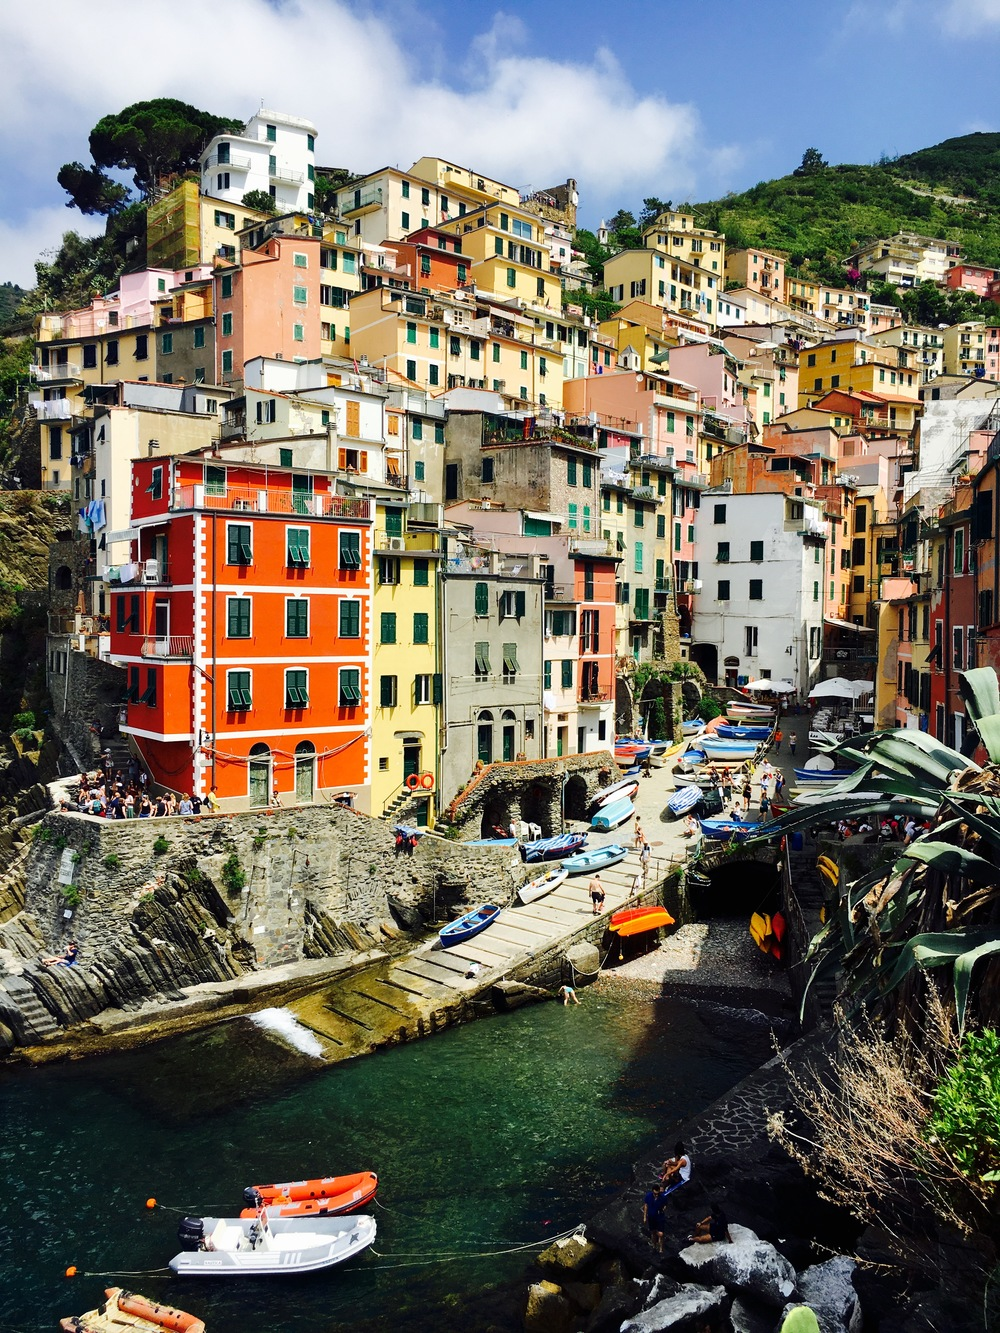 colorful homes in Riomaggiore, Cinque Terre, Italy